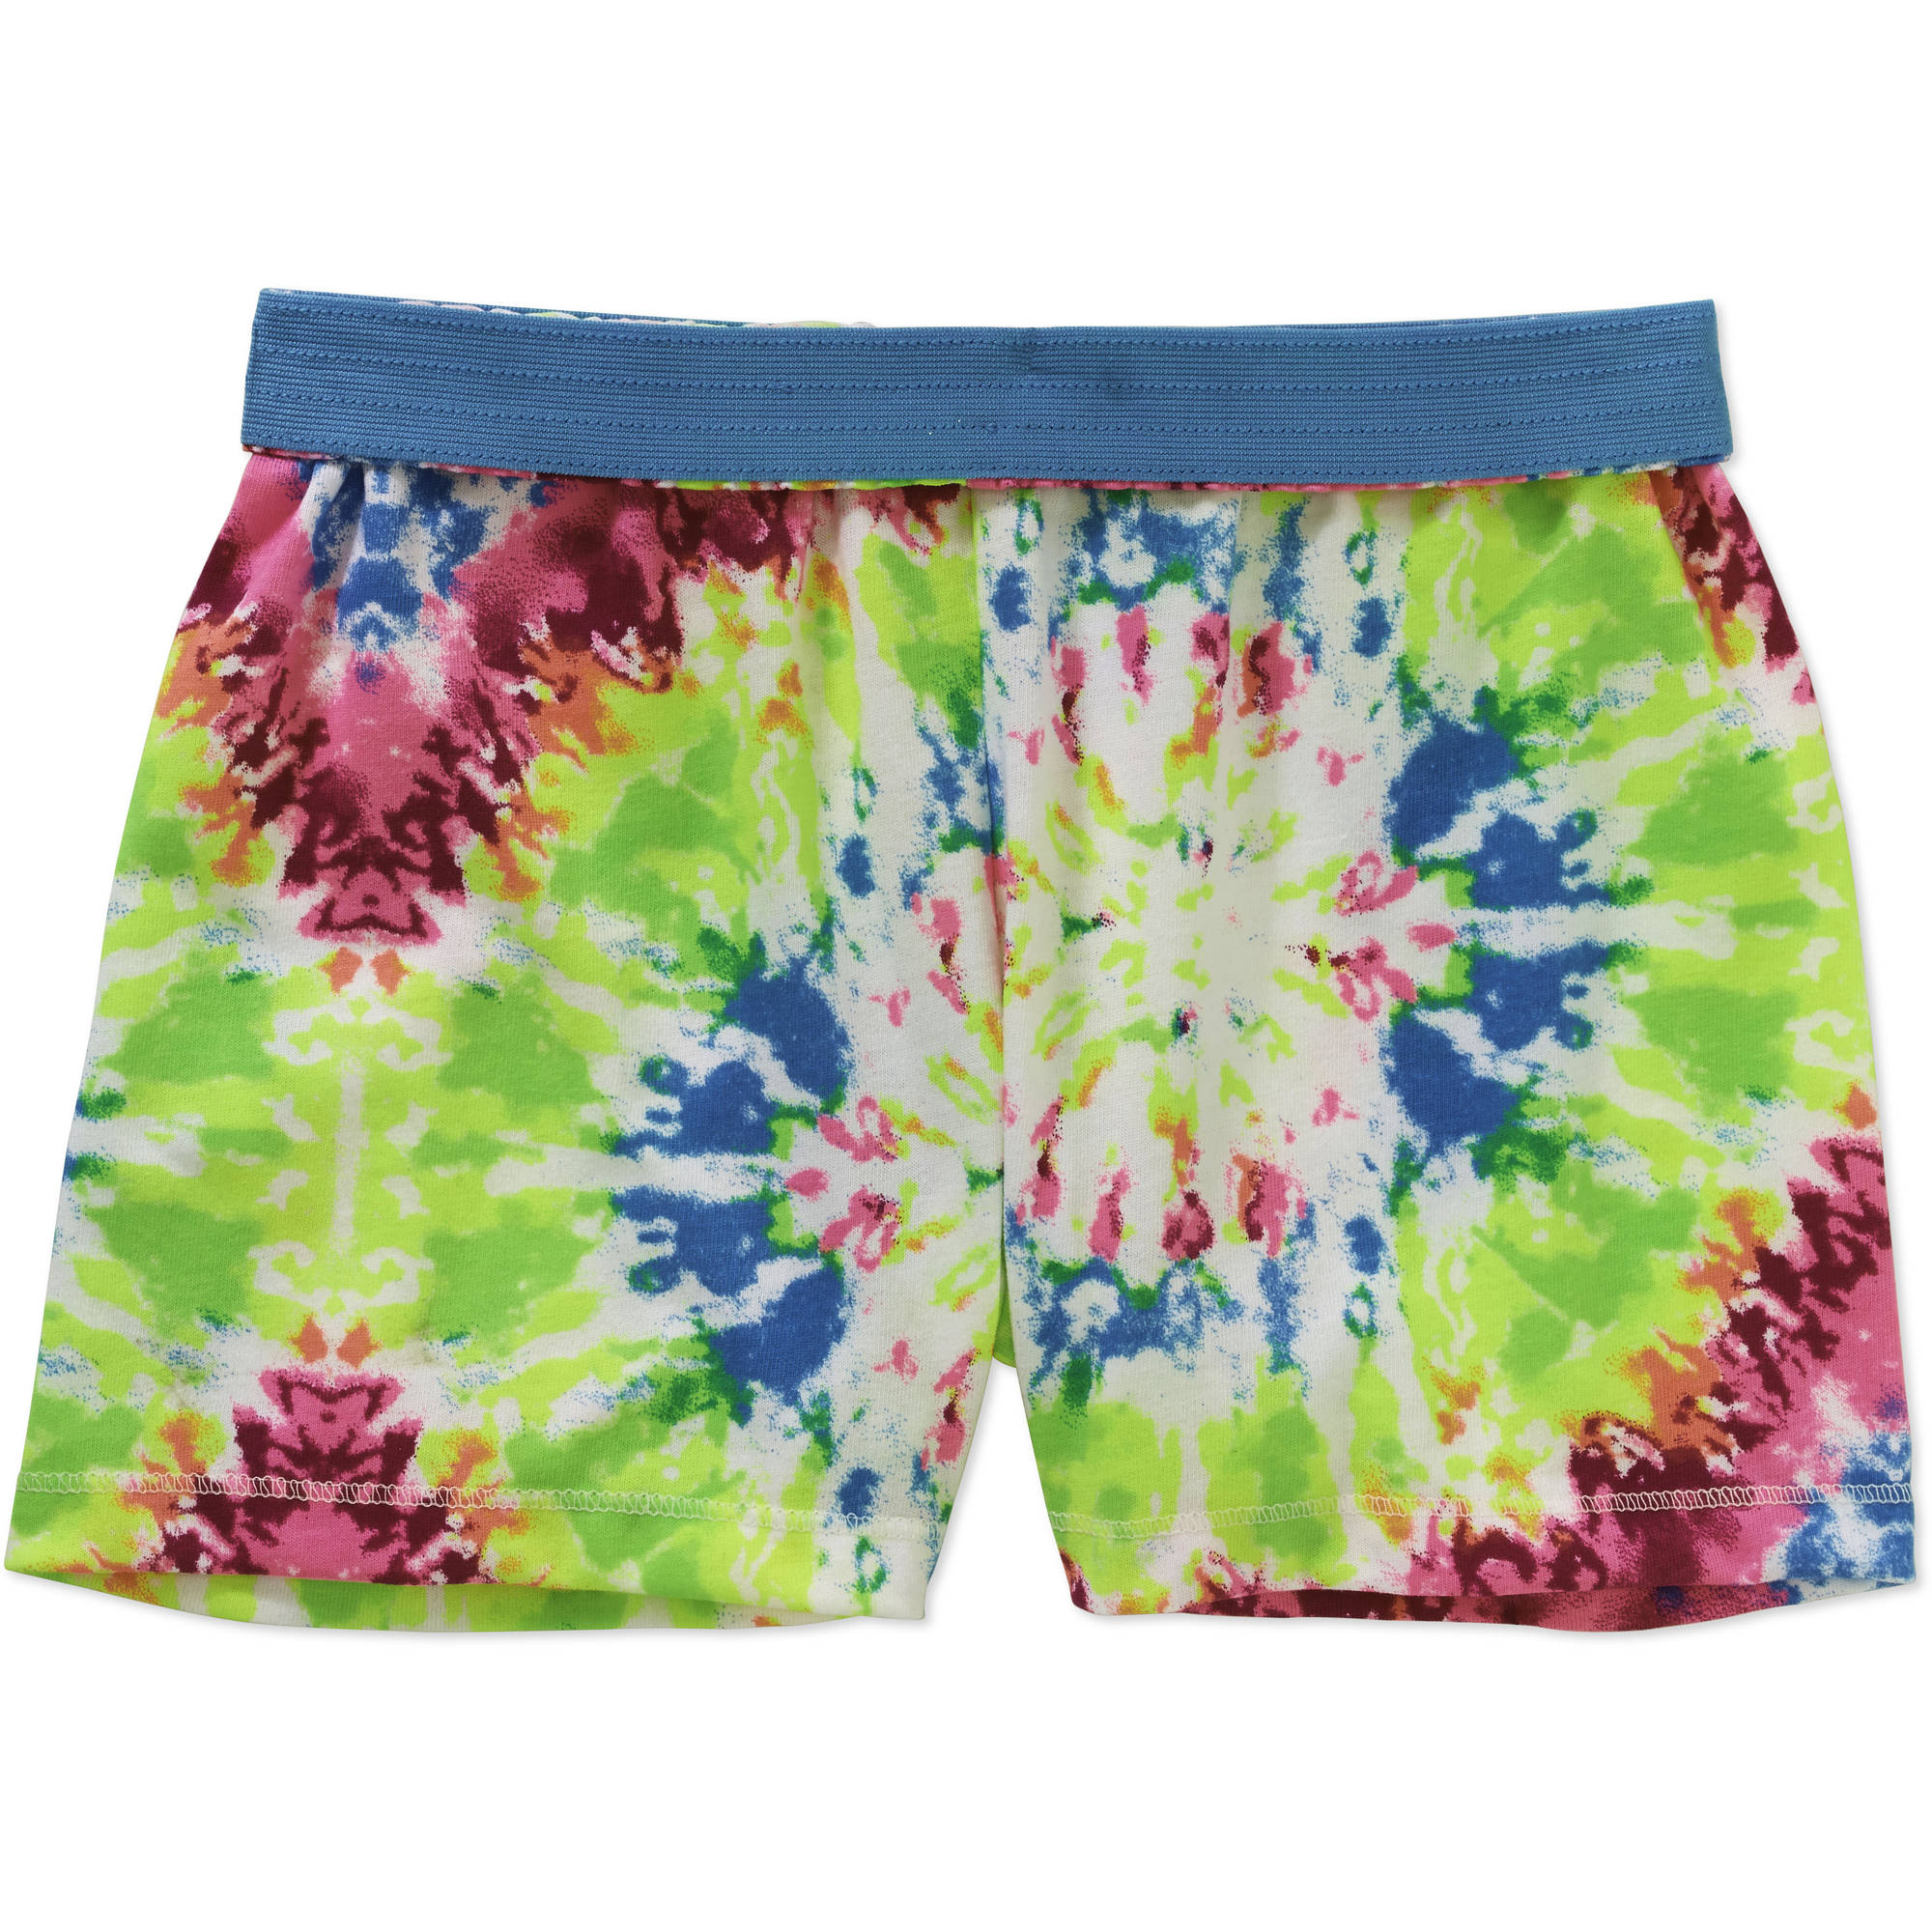 Girls' Faded Glory Print Shorts